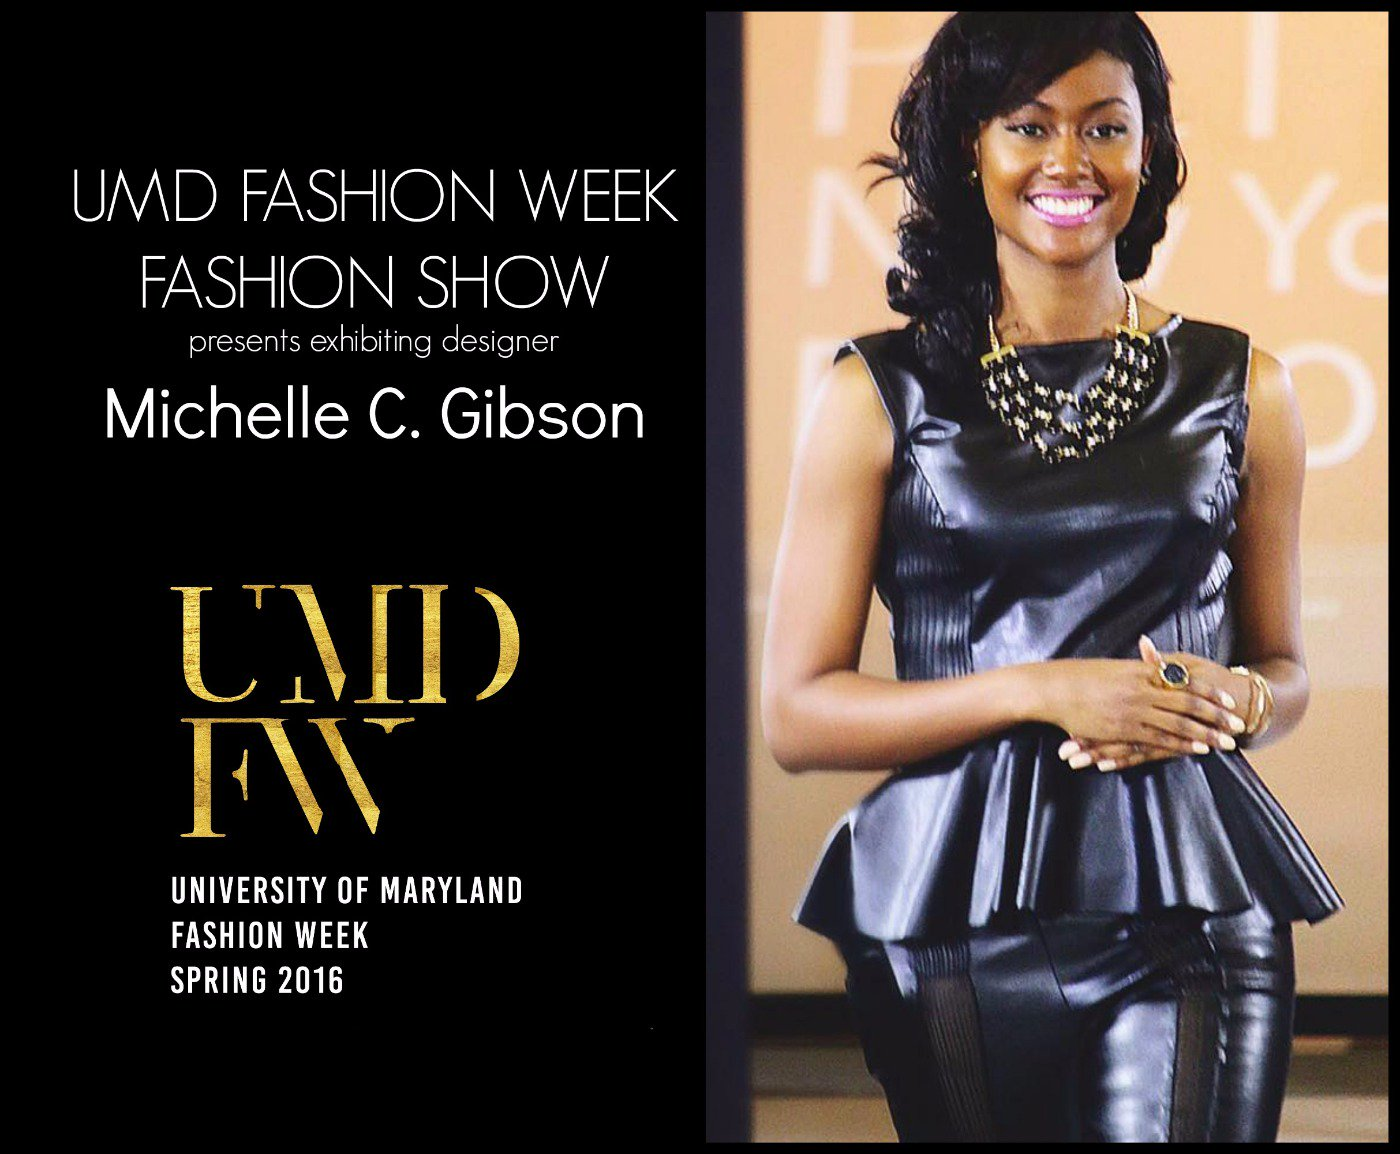 Umd Masterpiece On Twitter Introducing One Of The Exhibiting Designers For Umdfw Michelle C Gibson Https T Co Vorah51zpc Https T Co 0pqtzqdyc5